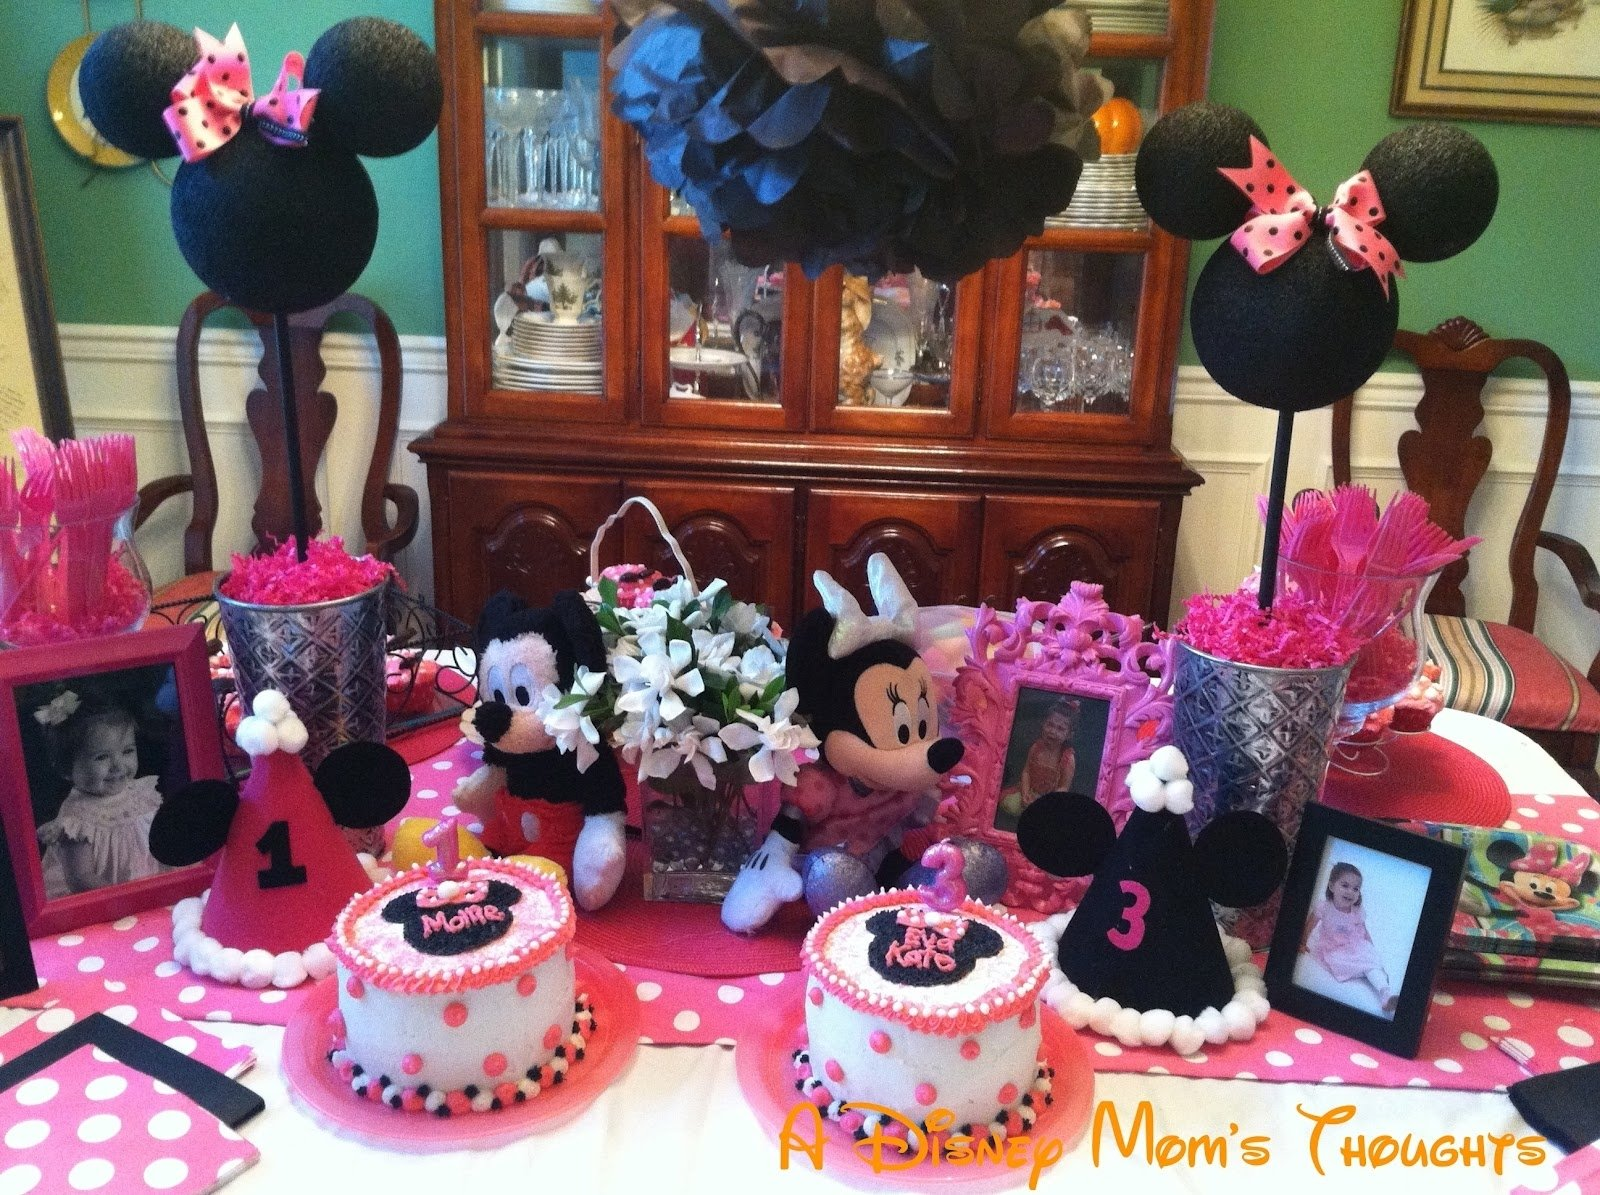 10 Trendy Minnie Mouse Table Decorations Ideas minnie mouse birthday ideas a disney moms thoughts 2020